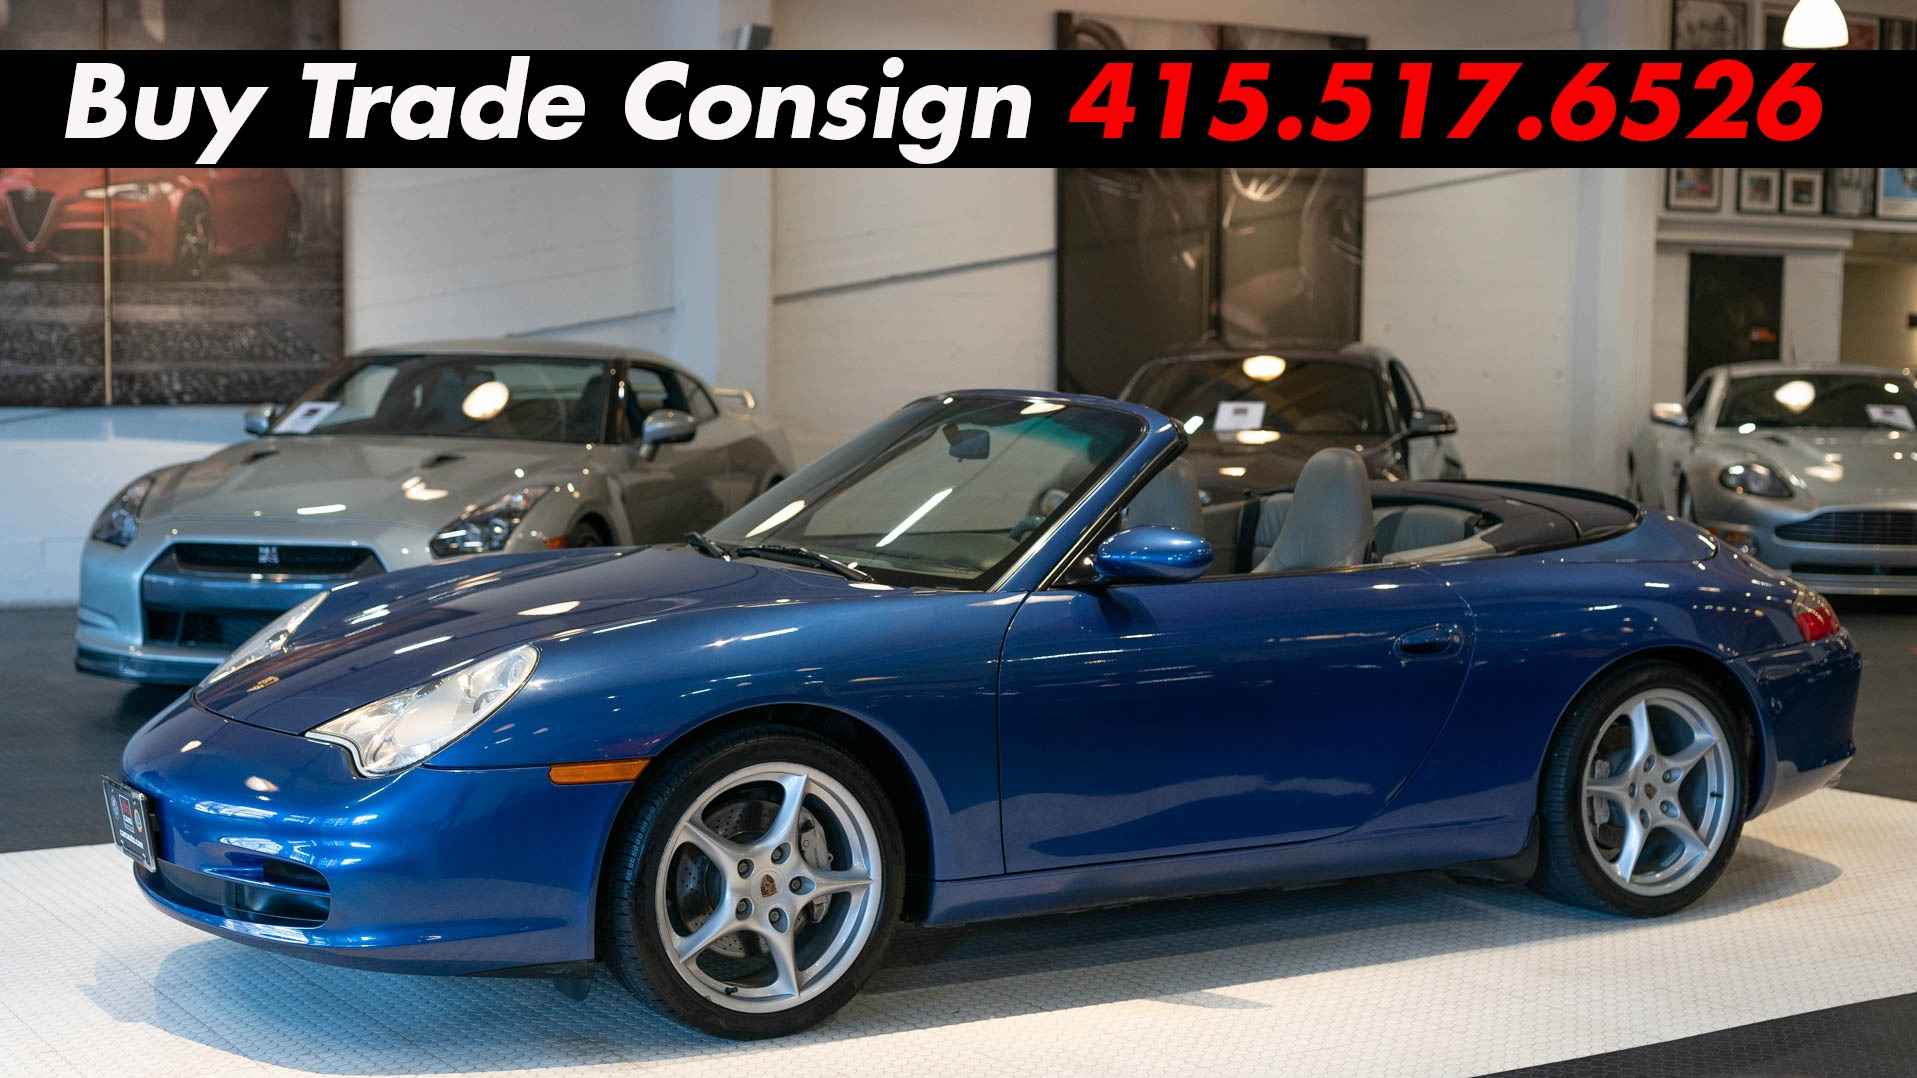 Used 2002 Porsche 911 Carrera 4 For Sale 20 900 Cars Dawydiak Stock 190103